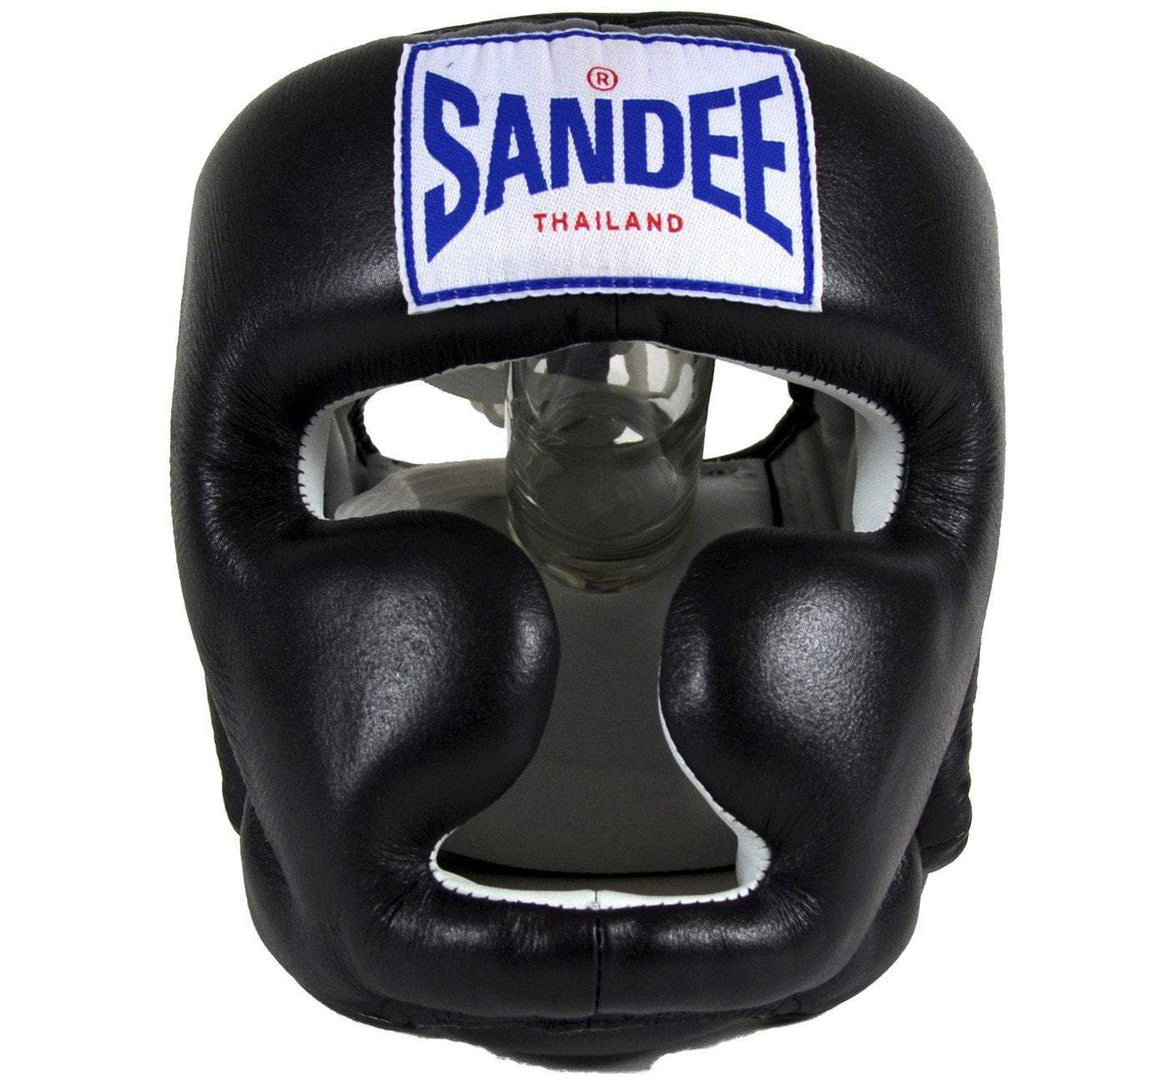 Sandee Closed Face Leather Headgear - Black